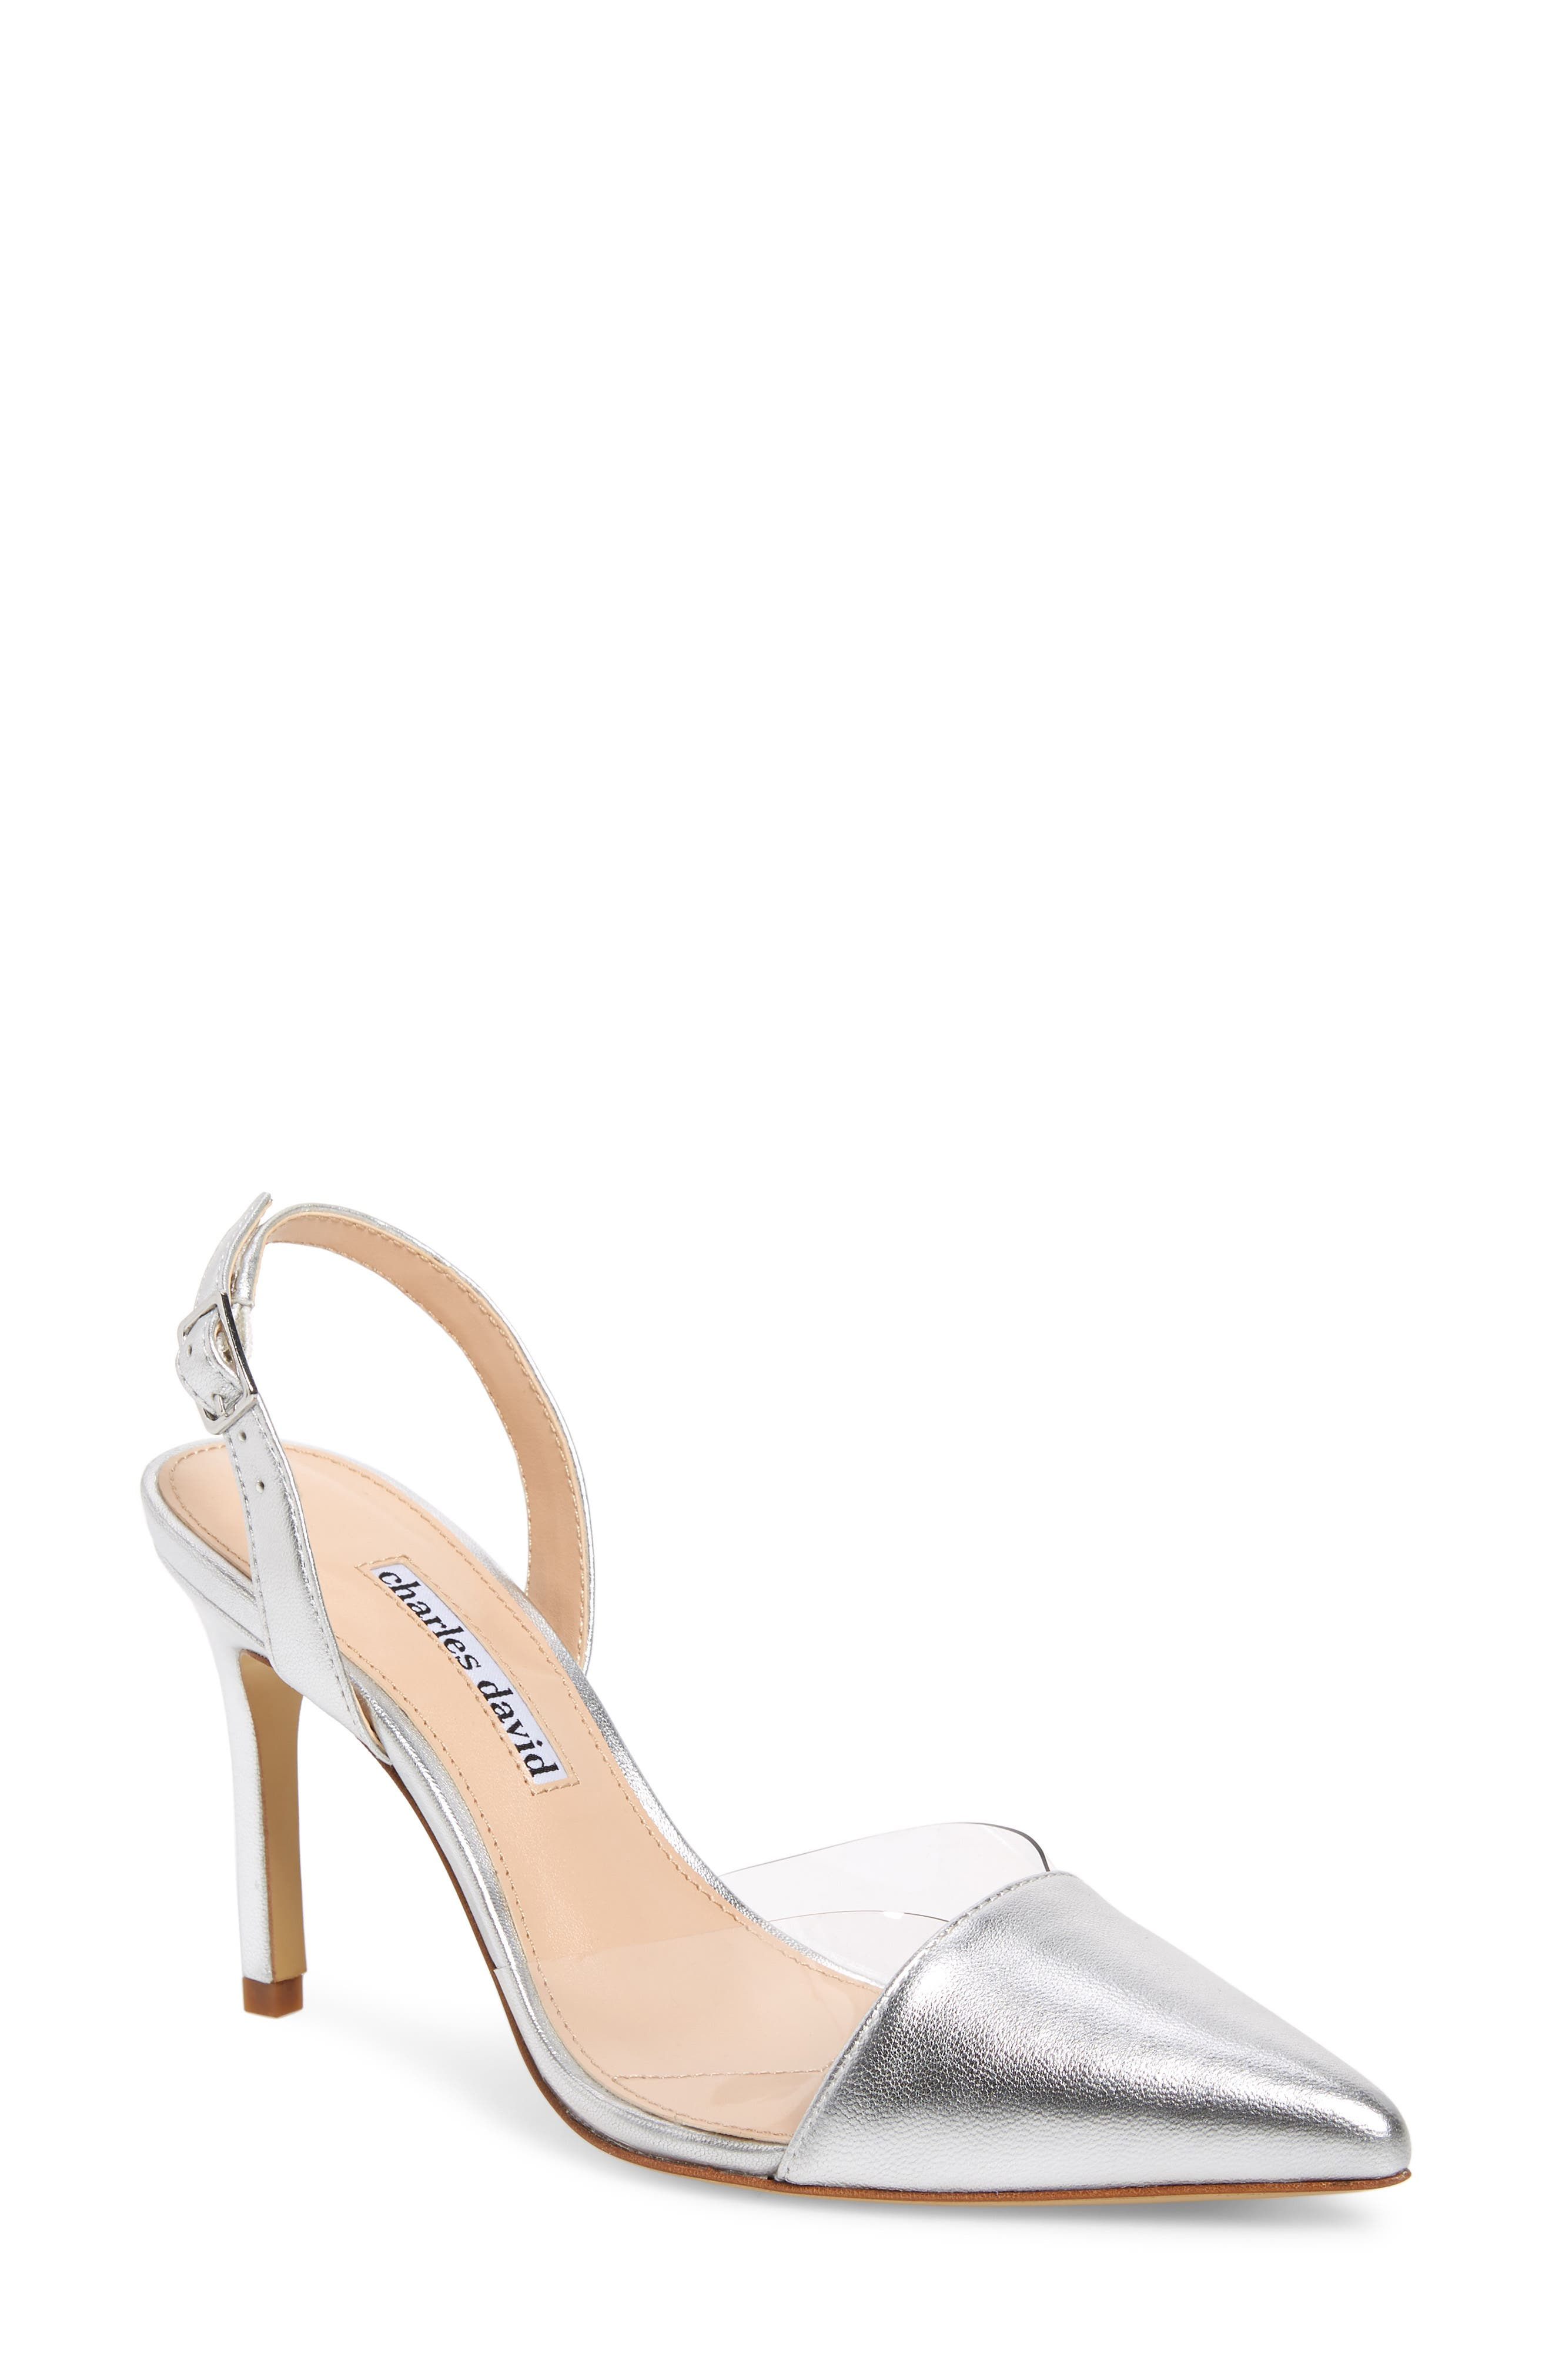 CHARLES DAVID Women'S Daryl Leather & See-Through Slingback Pumps in Silver/ Clear Leather